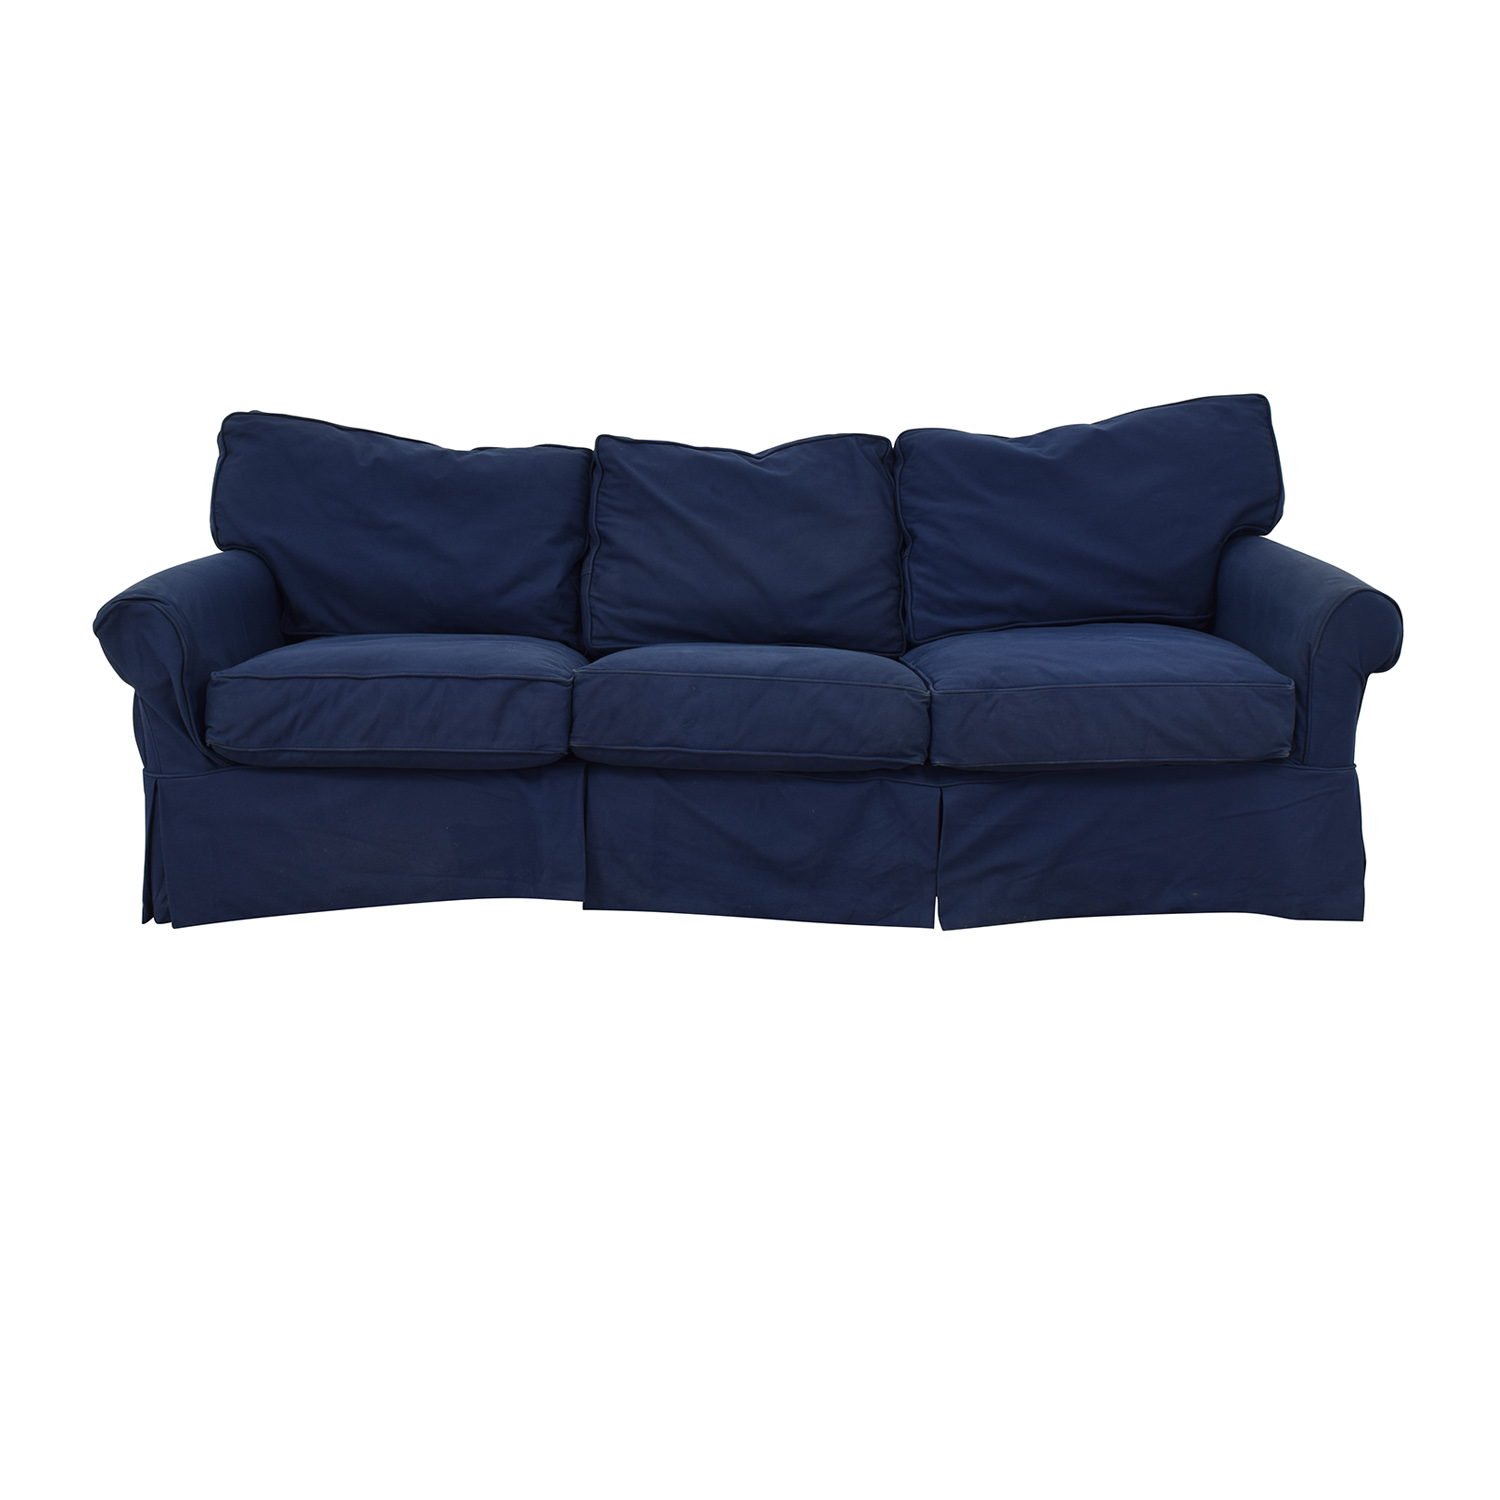 Crate & Barrel Crate & Barrel Sleeper Sofa discount